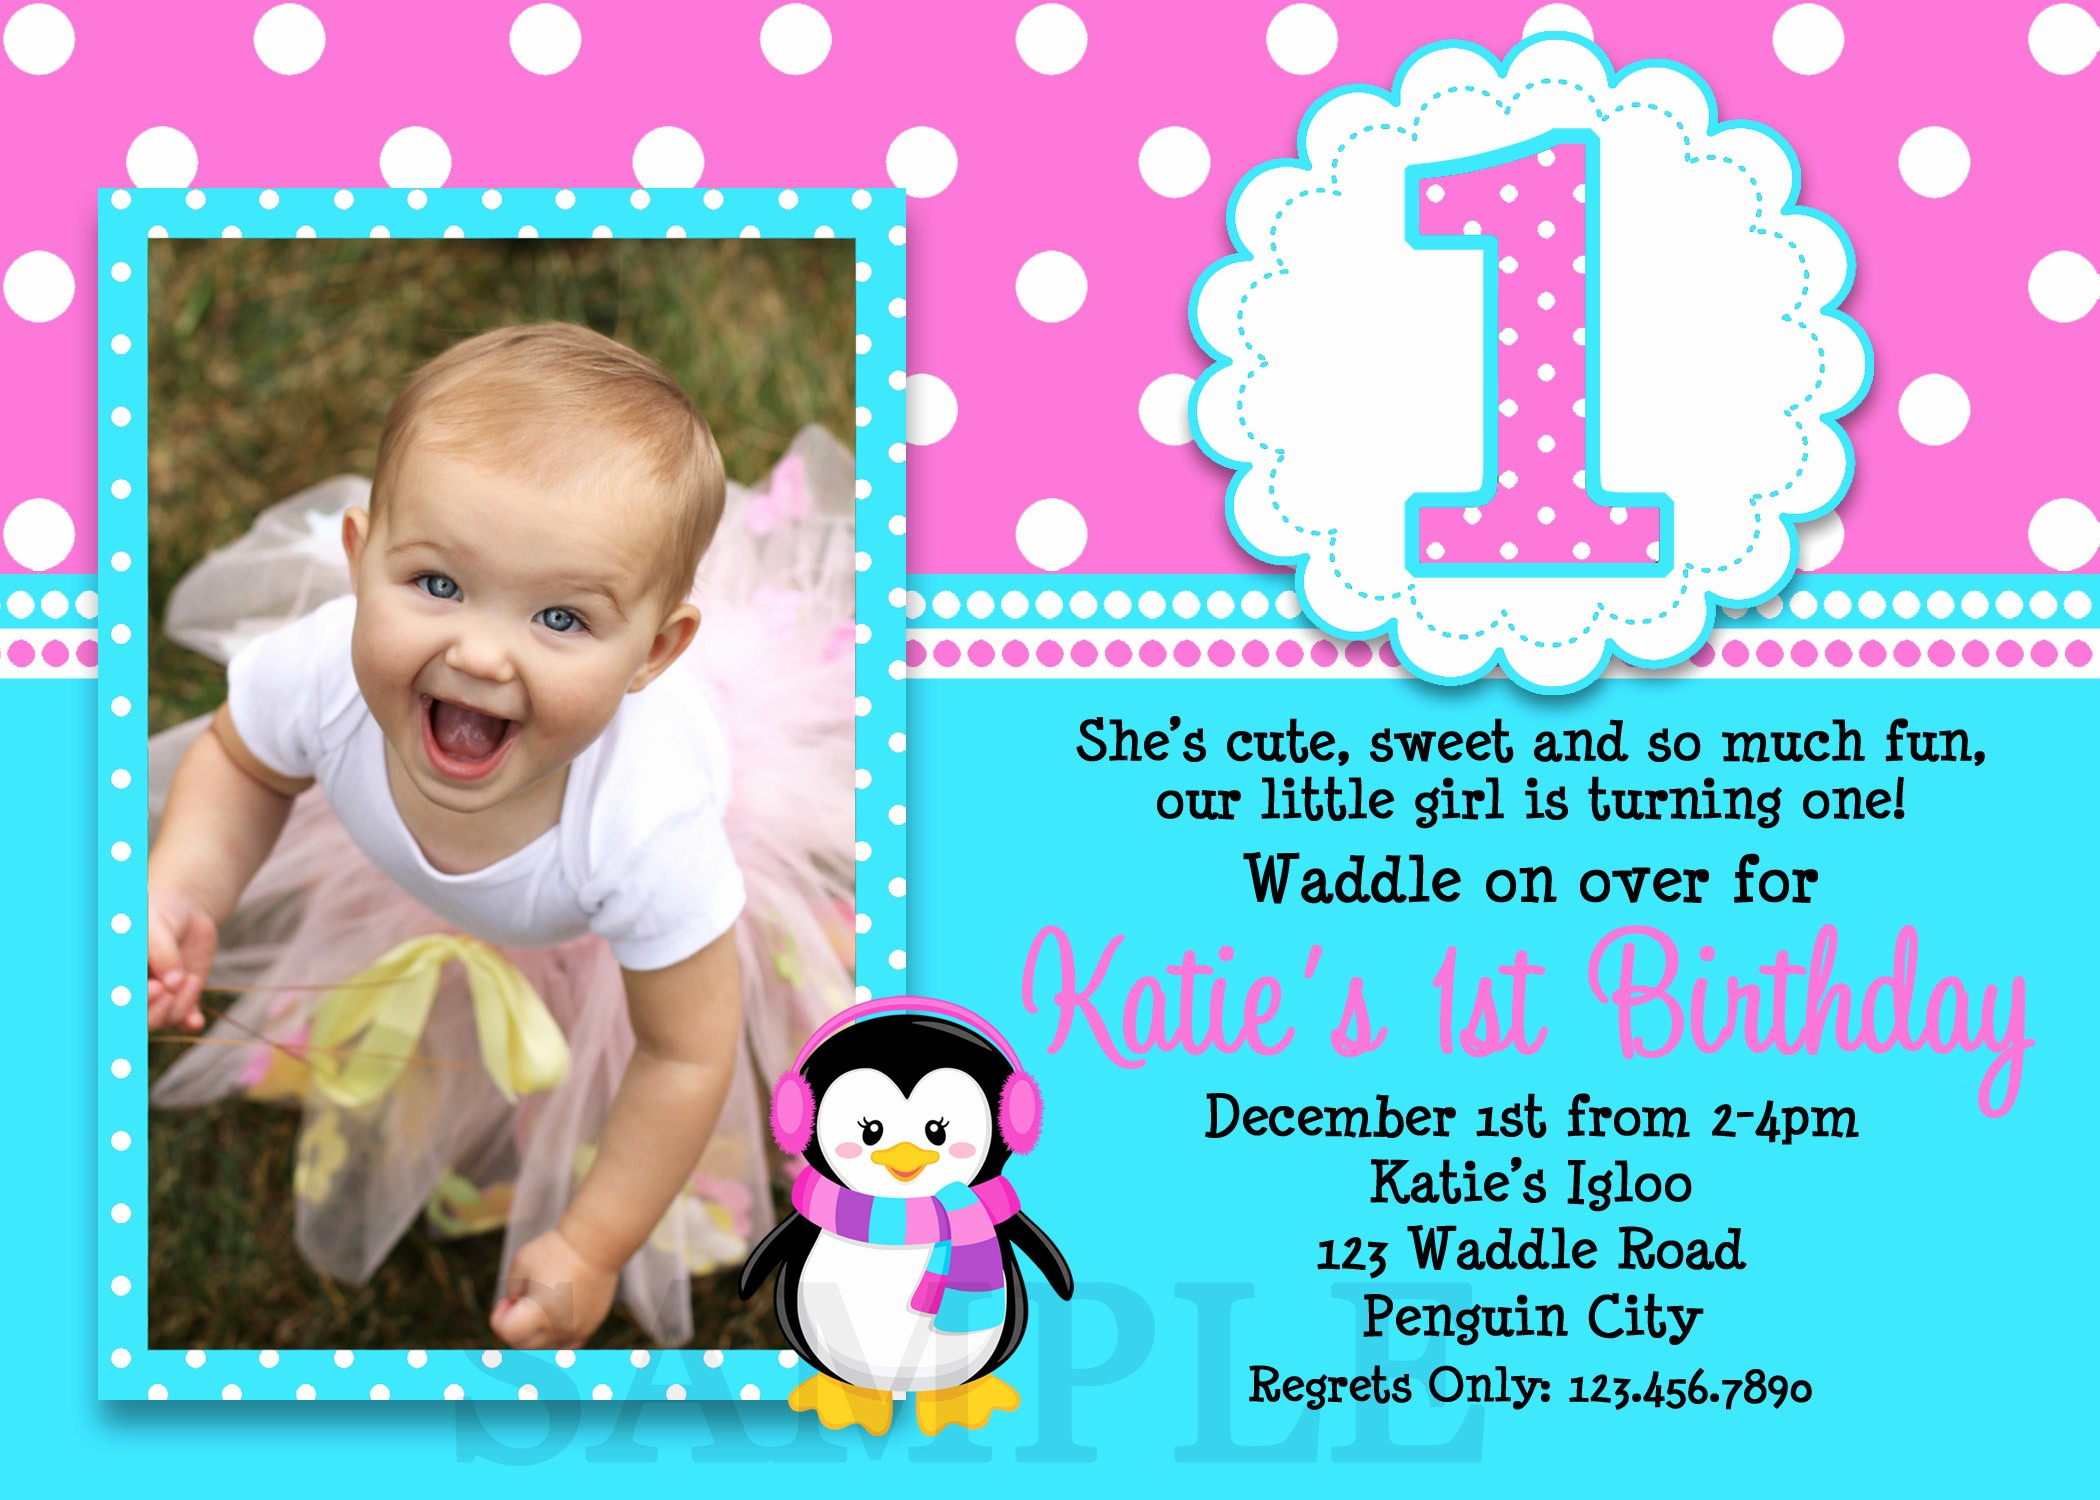 Birthday Party Invitation Card Template Fresh 1st Birthday Invitations Girl Free Template Baby Girl S